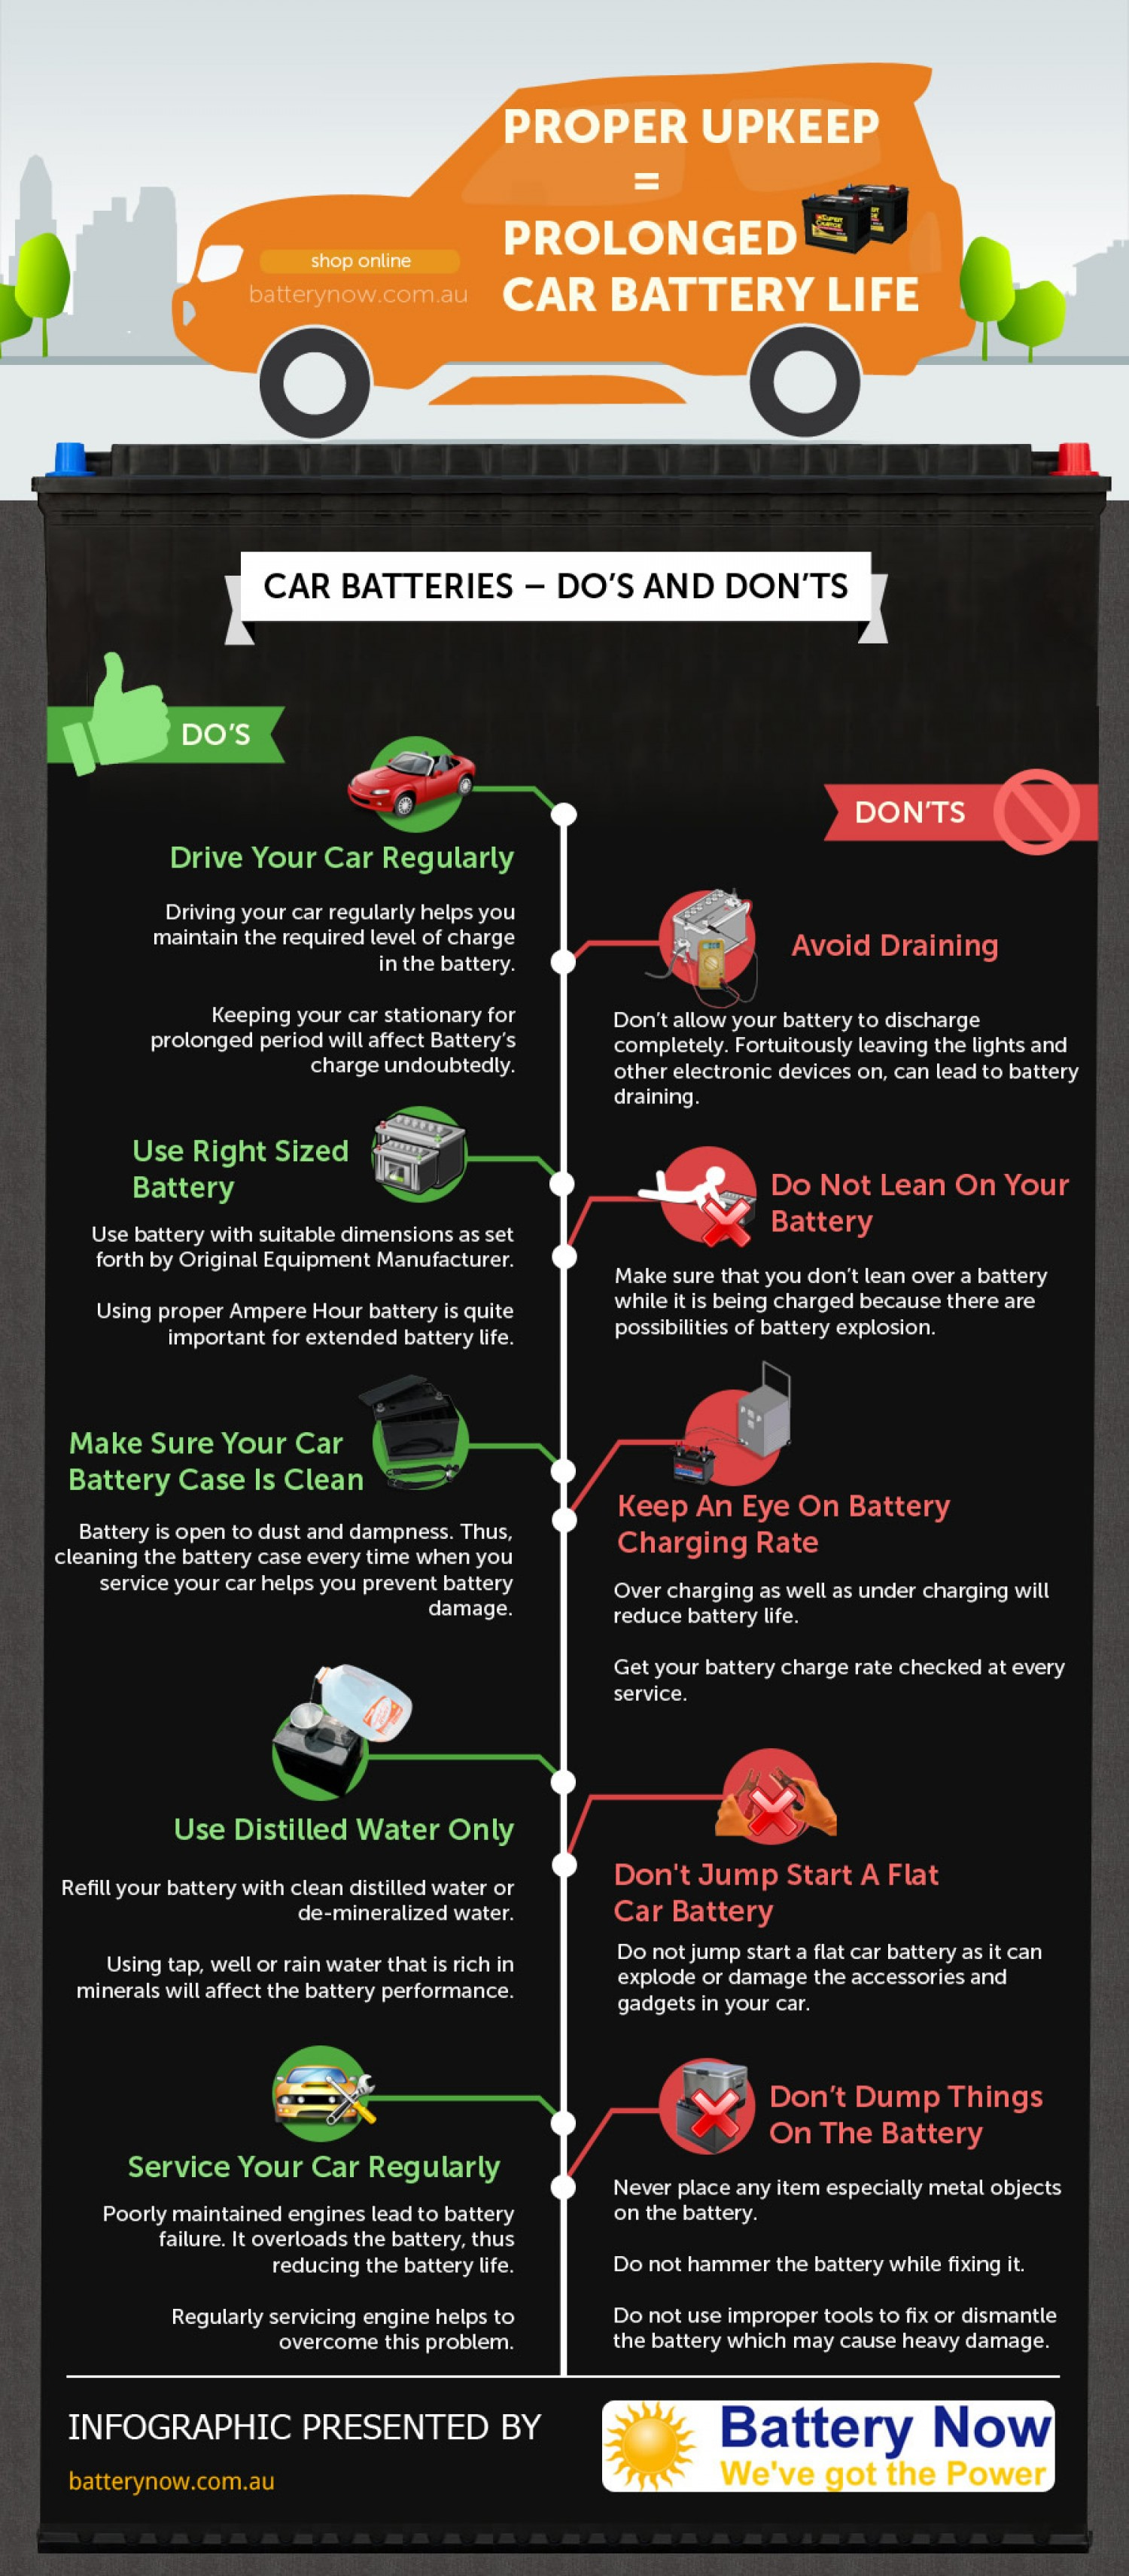 an-infographic-on-proper-car-battery-upkeep_52a9a5f9c0d04_w1500